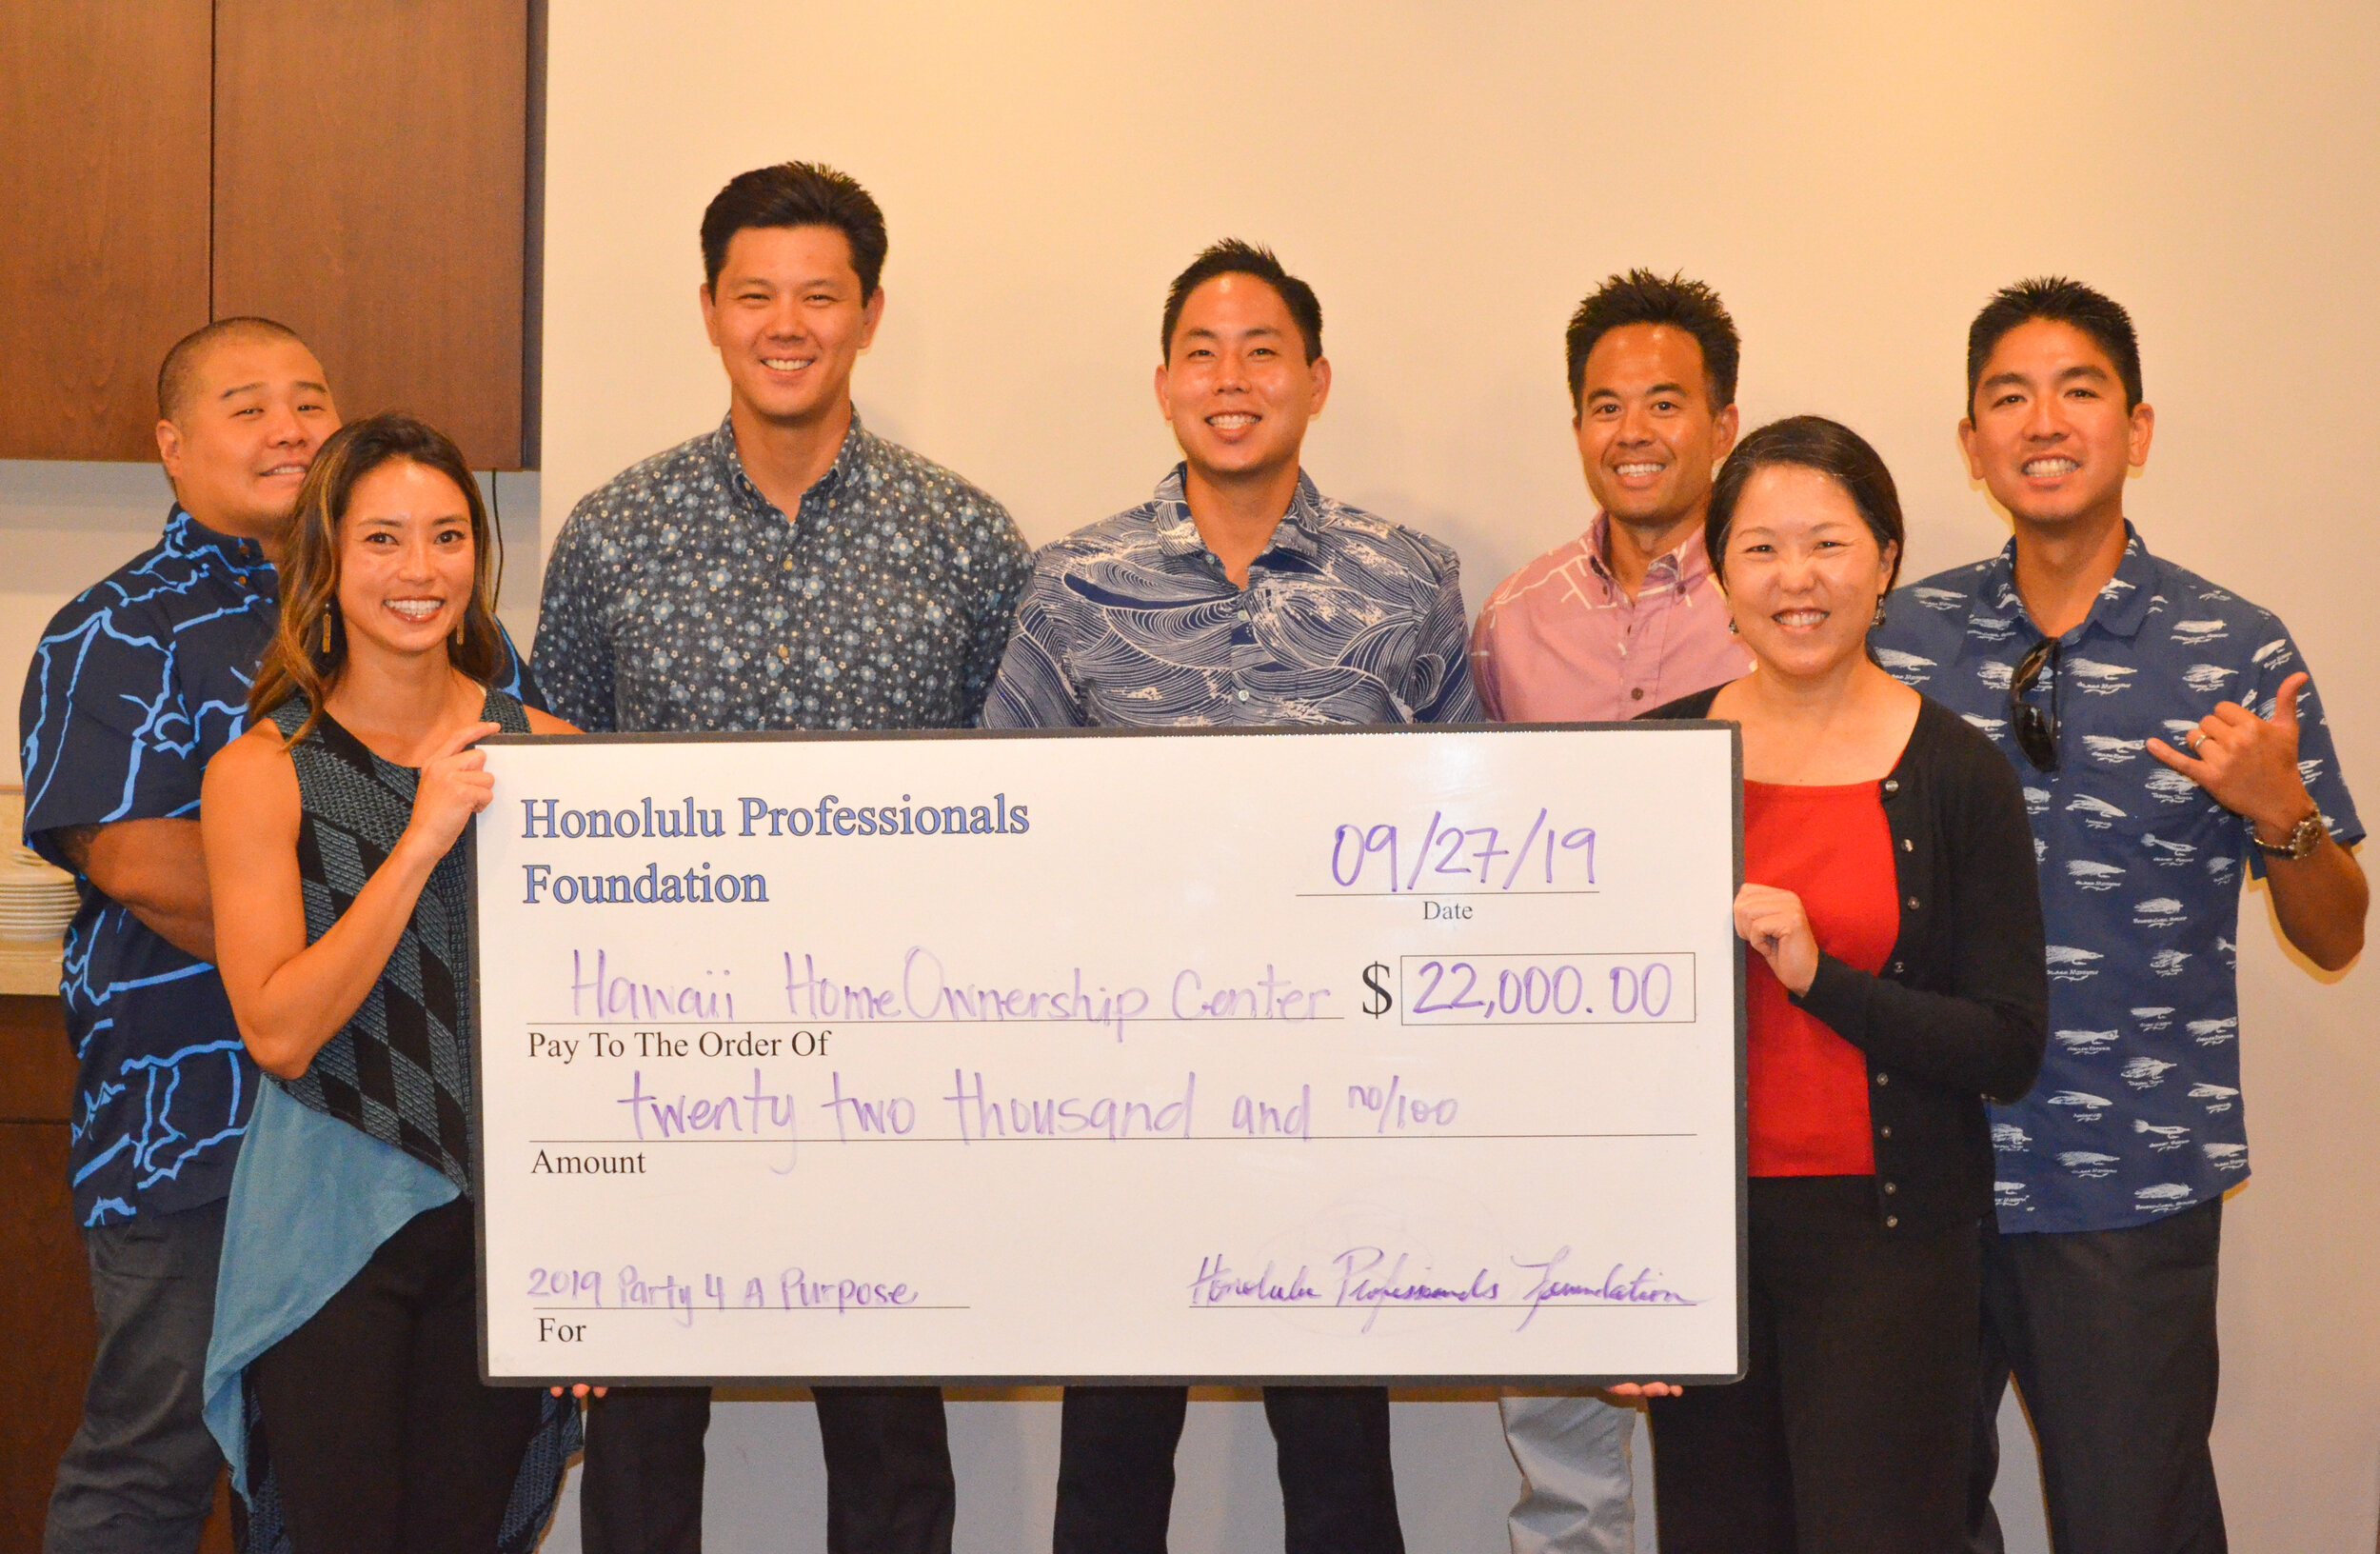 HPF pictured with Reina M. Miyamoto, Executive Director of the Hawaii HomeOwnership Center (HHOC).